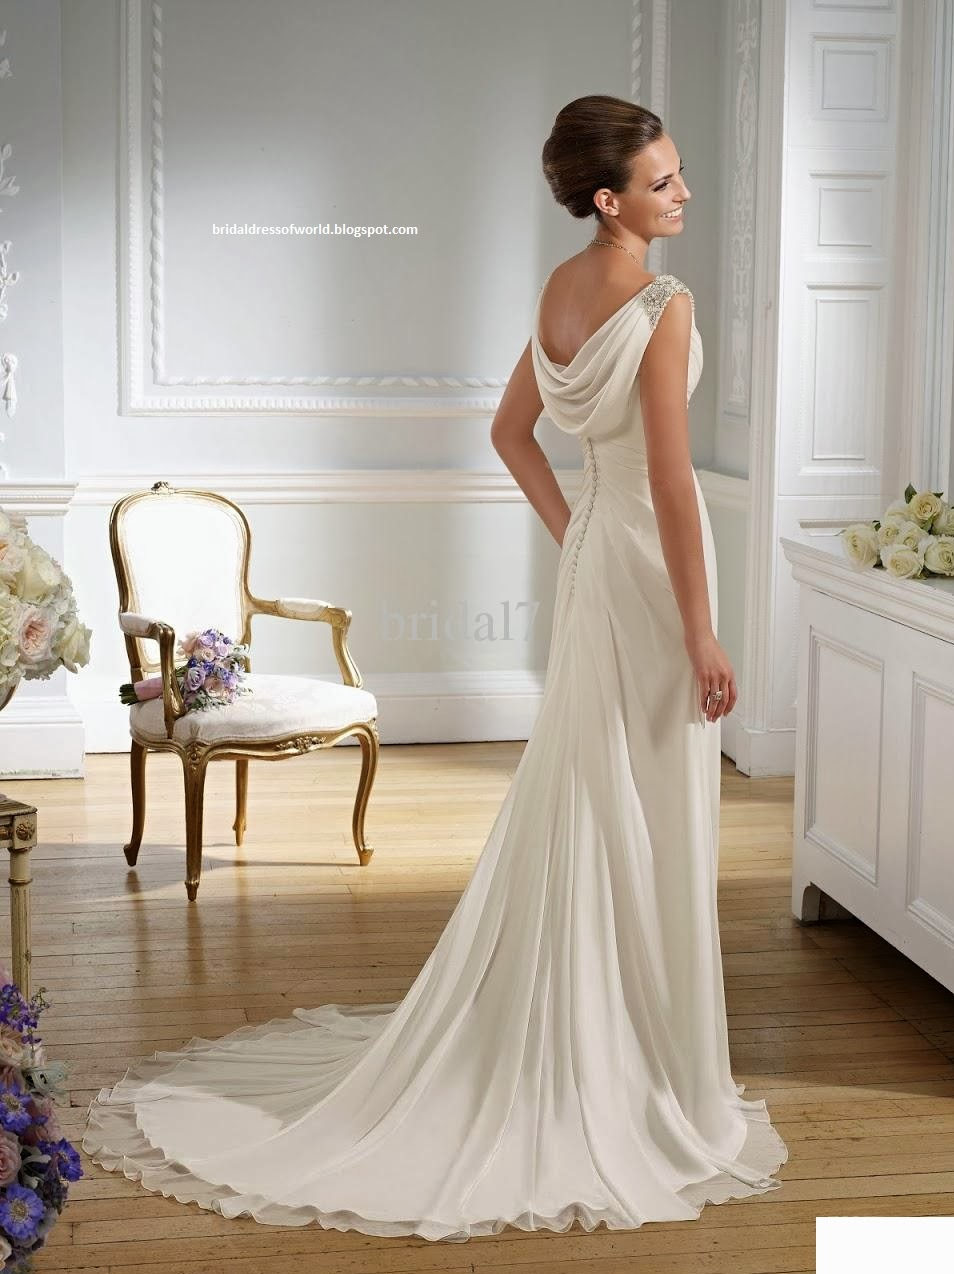 Bridal dresses of world november 2013 bridal dresses of world ombrellifo Image collections